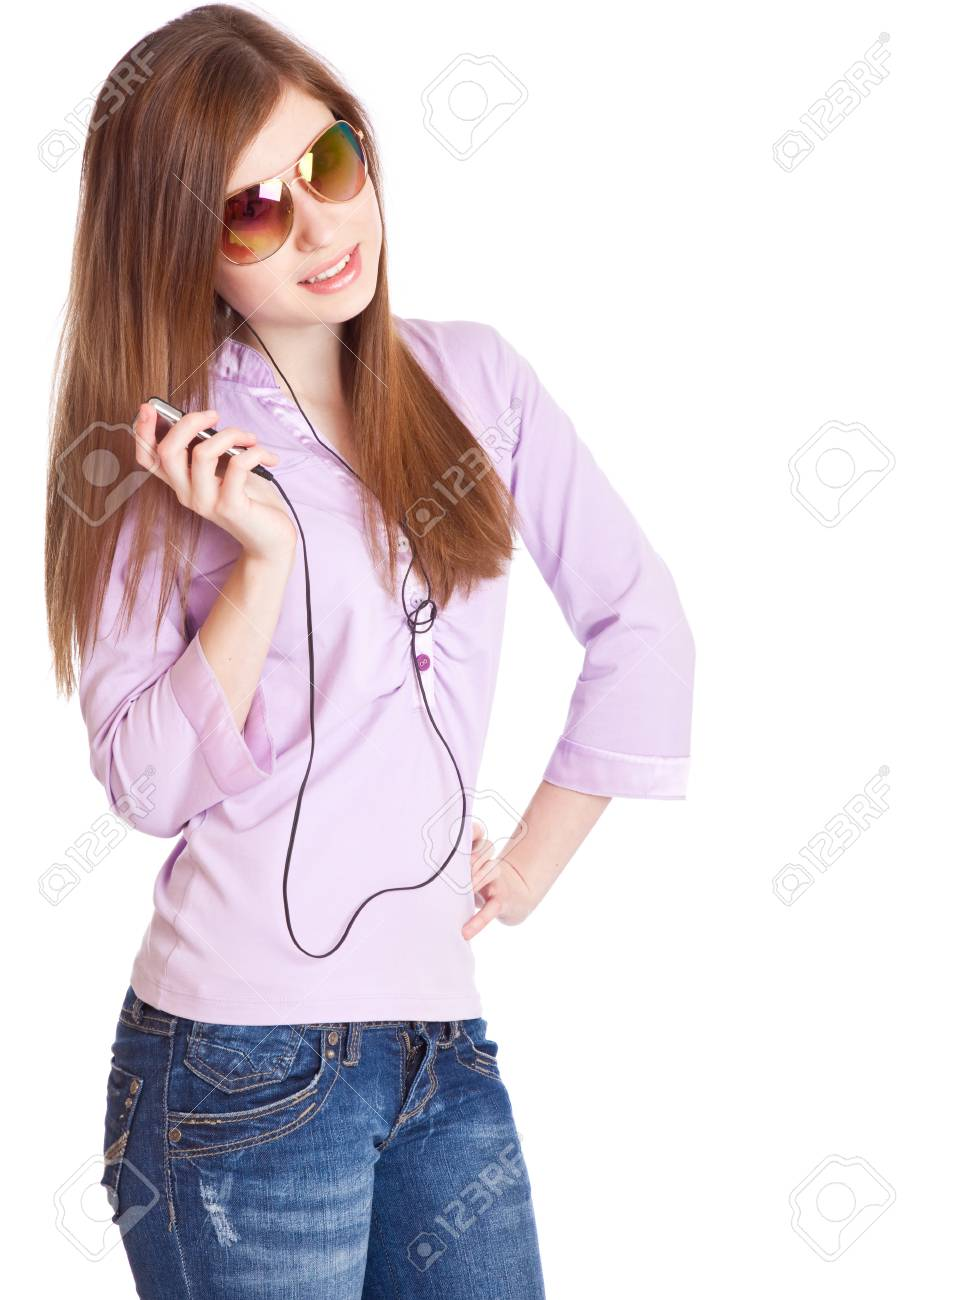 Young girl listening to music om mp3 player. Isolated on white background Stock Photo - 7218648